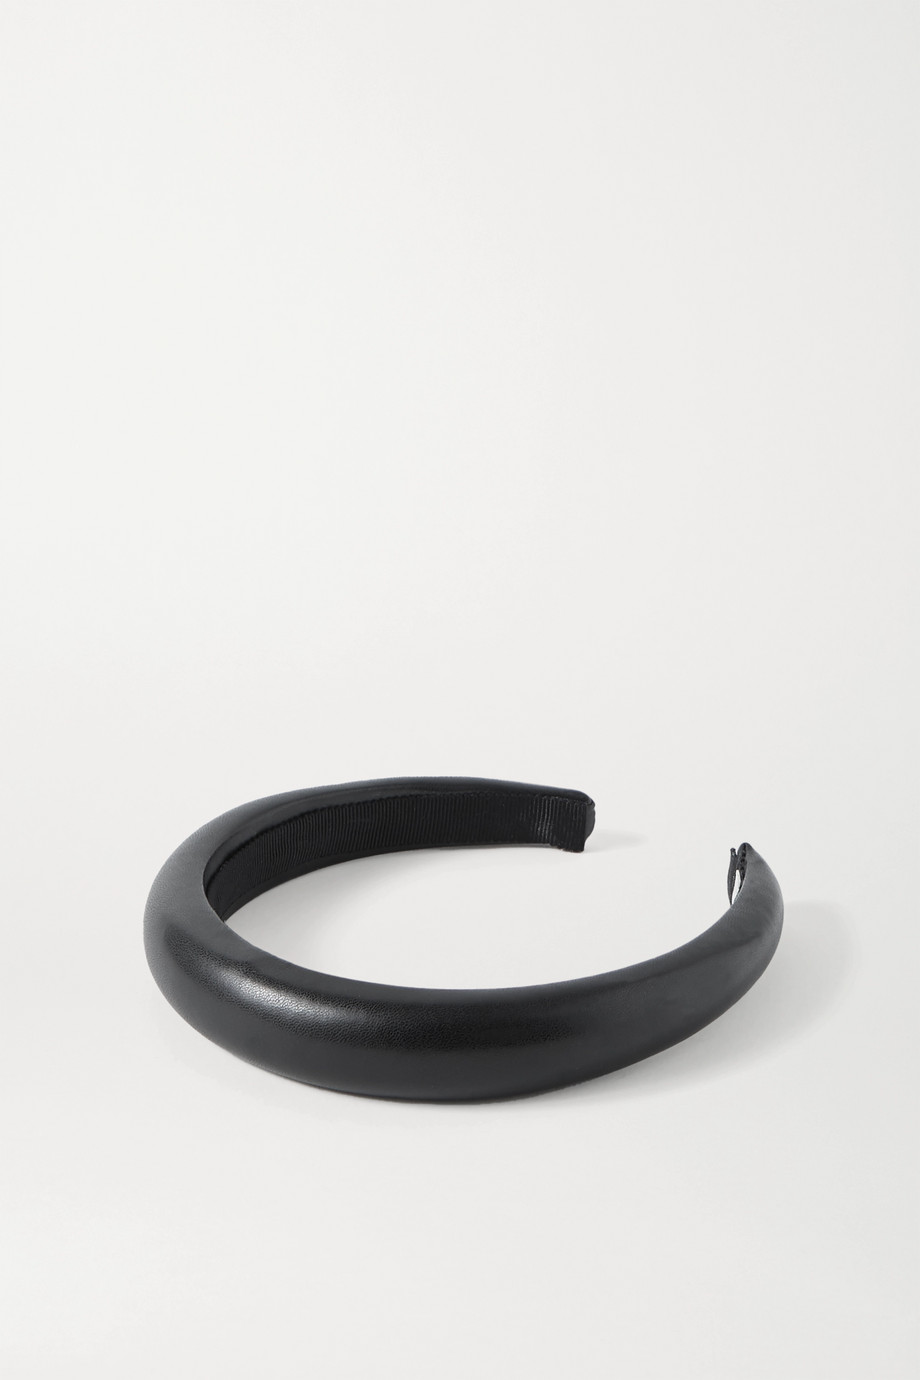 JENNIFER BEHR Marcy vegan leather headband